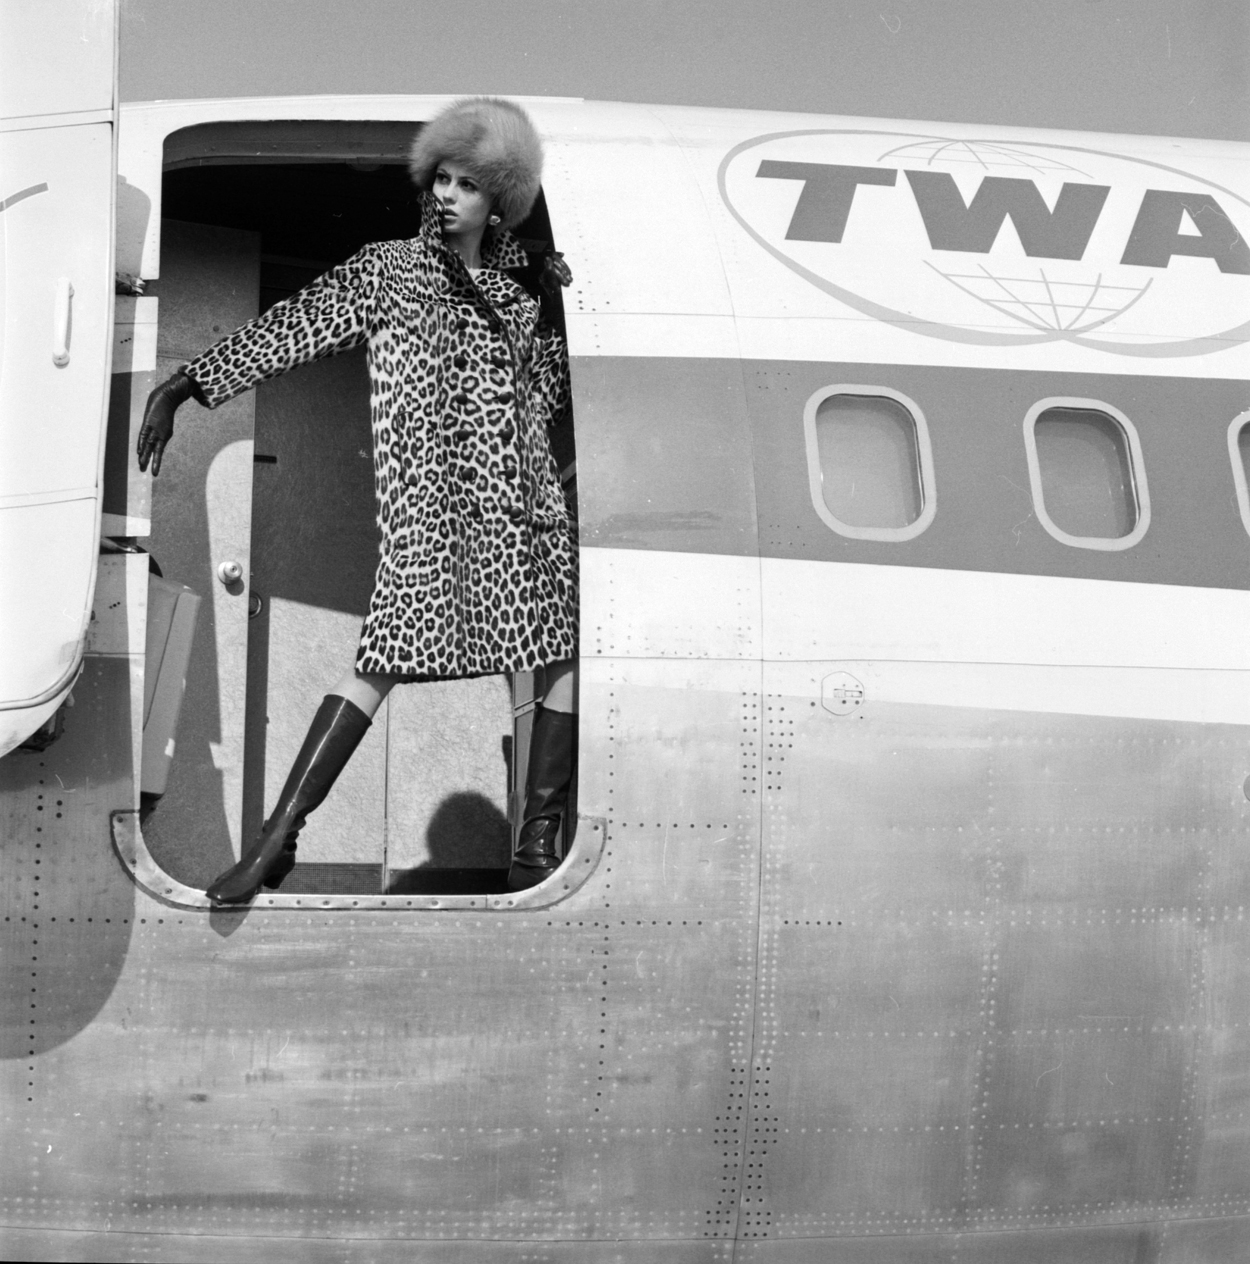 TWA Fashion, 1967